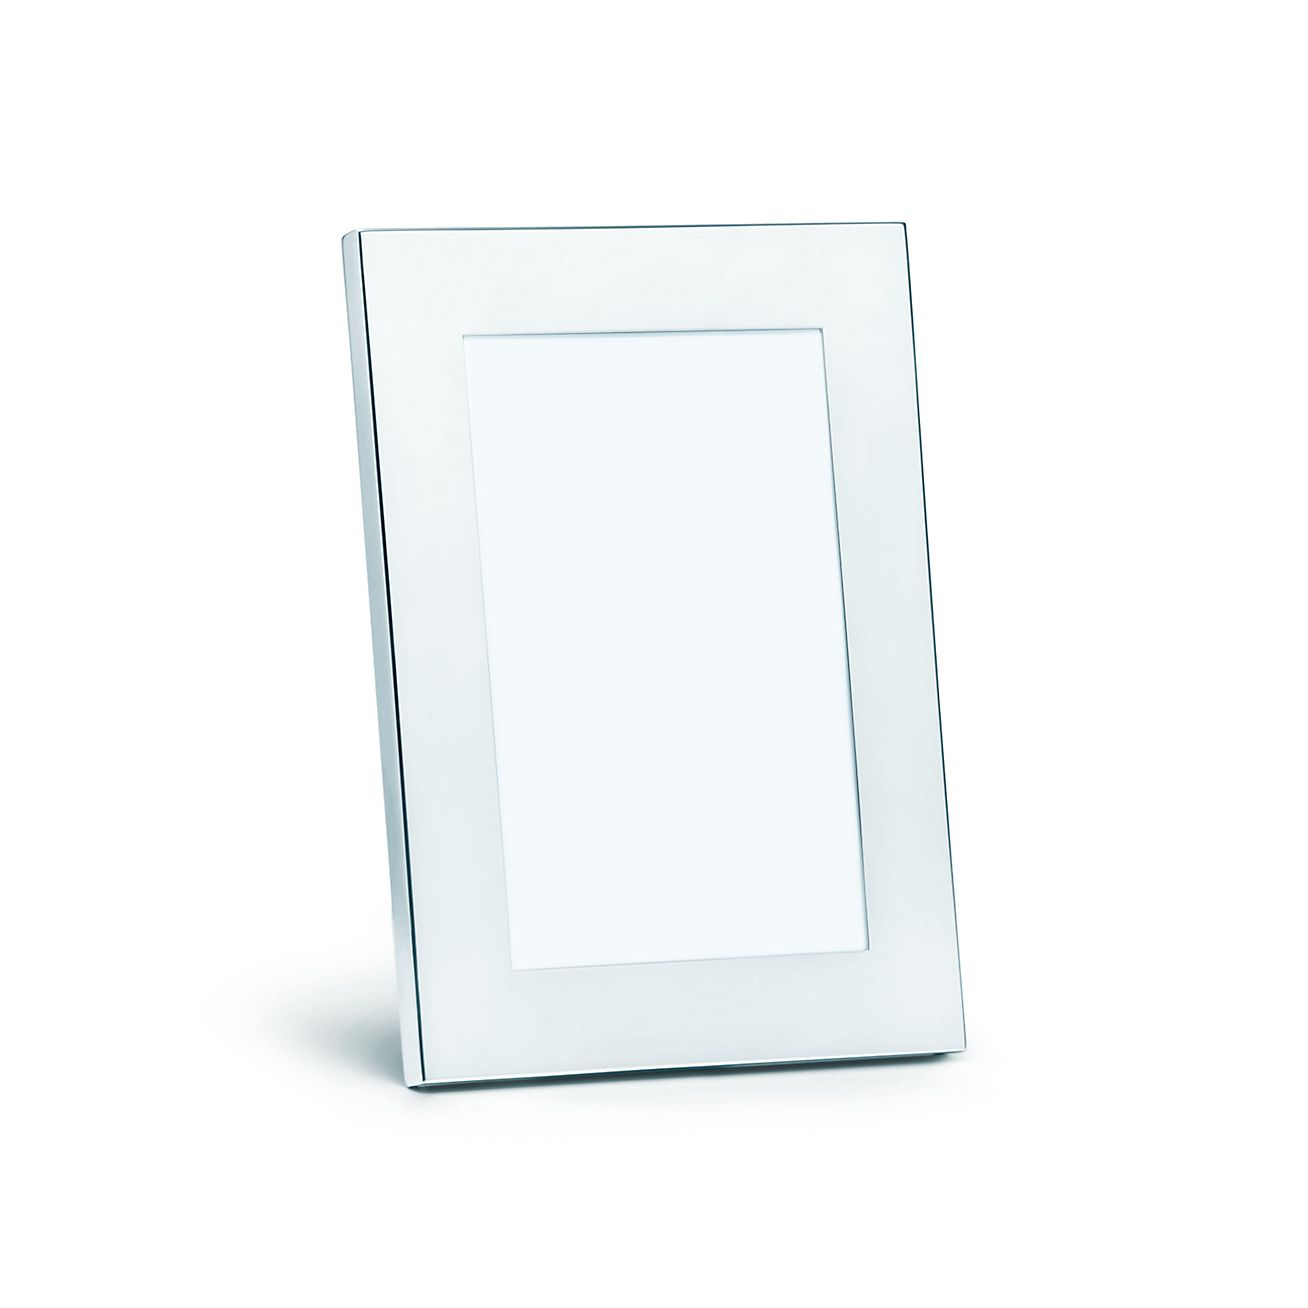 Rectangular frame in sterling silver, size 5 x 7\